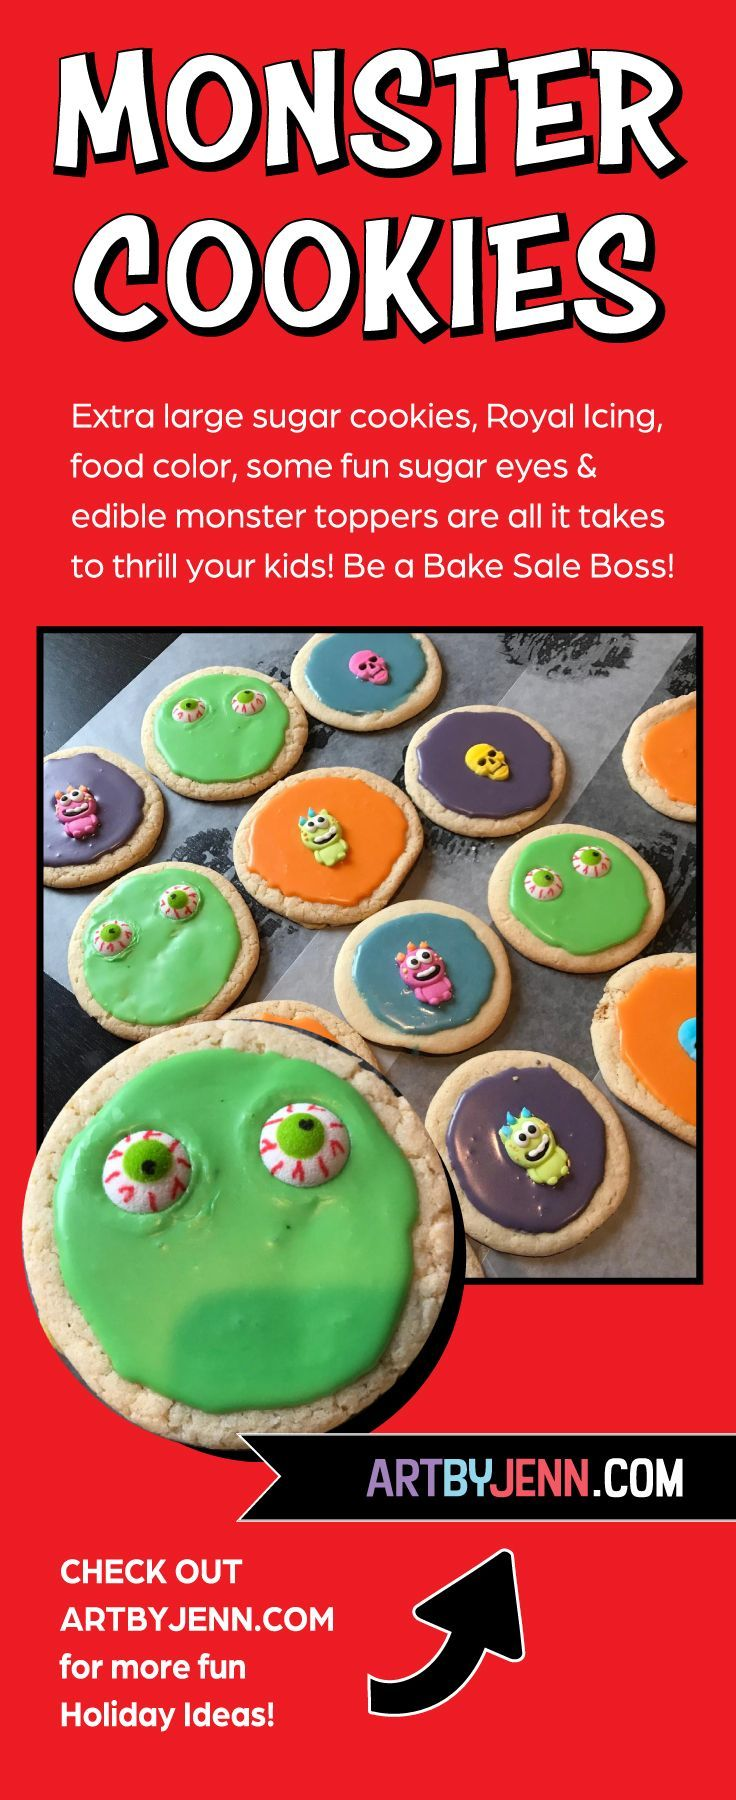 MONSTER COOKIES THAT THRILL! #bakesaleideas You don't have to be a famous baker to create these Halloween Monster Cookies! Thrill your family or become a Bake Sale Boss! Visit ARTBYJENN.COM for more fun Halloween ideas and products!  #monstercookies  #bakesaleboss  #halloween #bakesaleideas